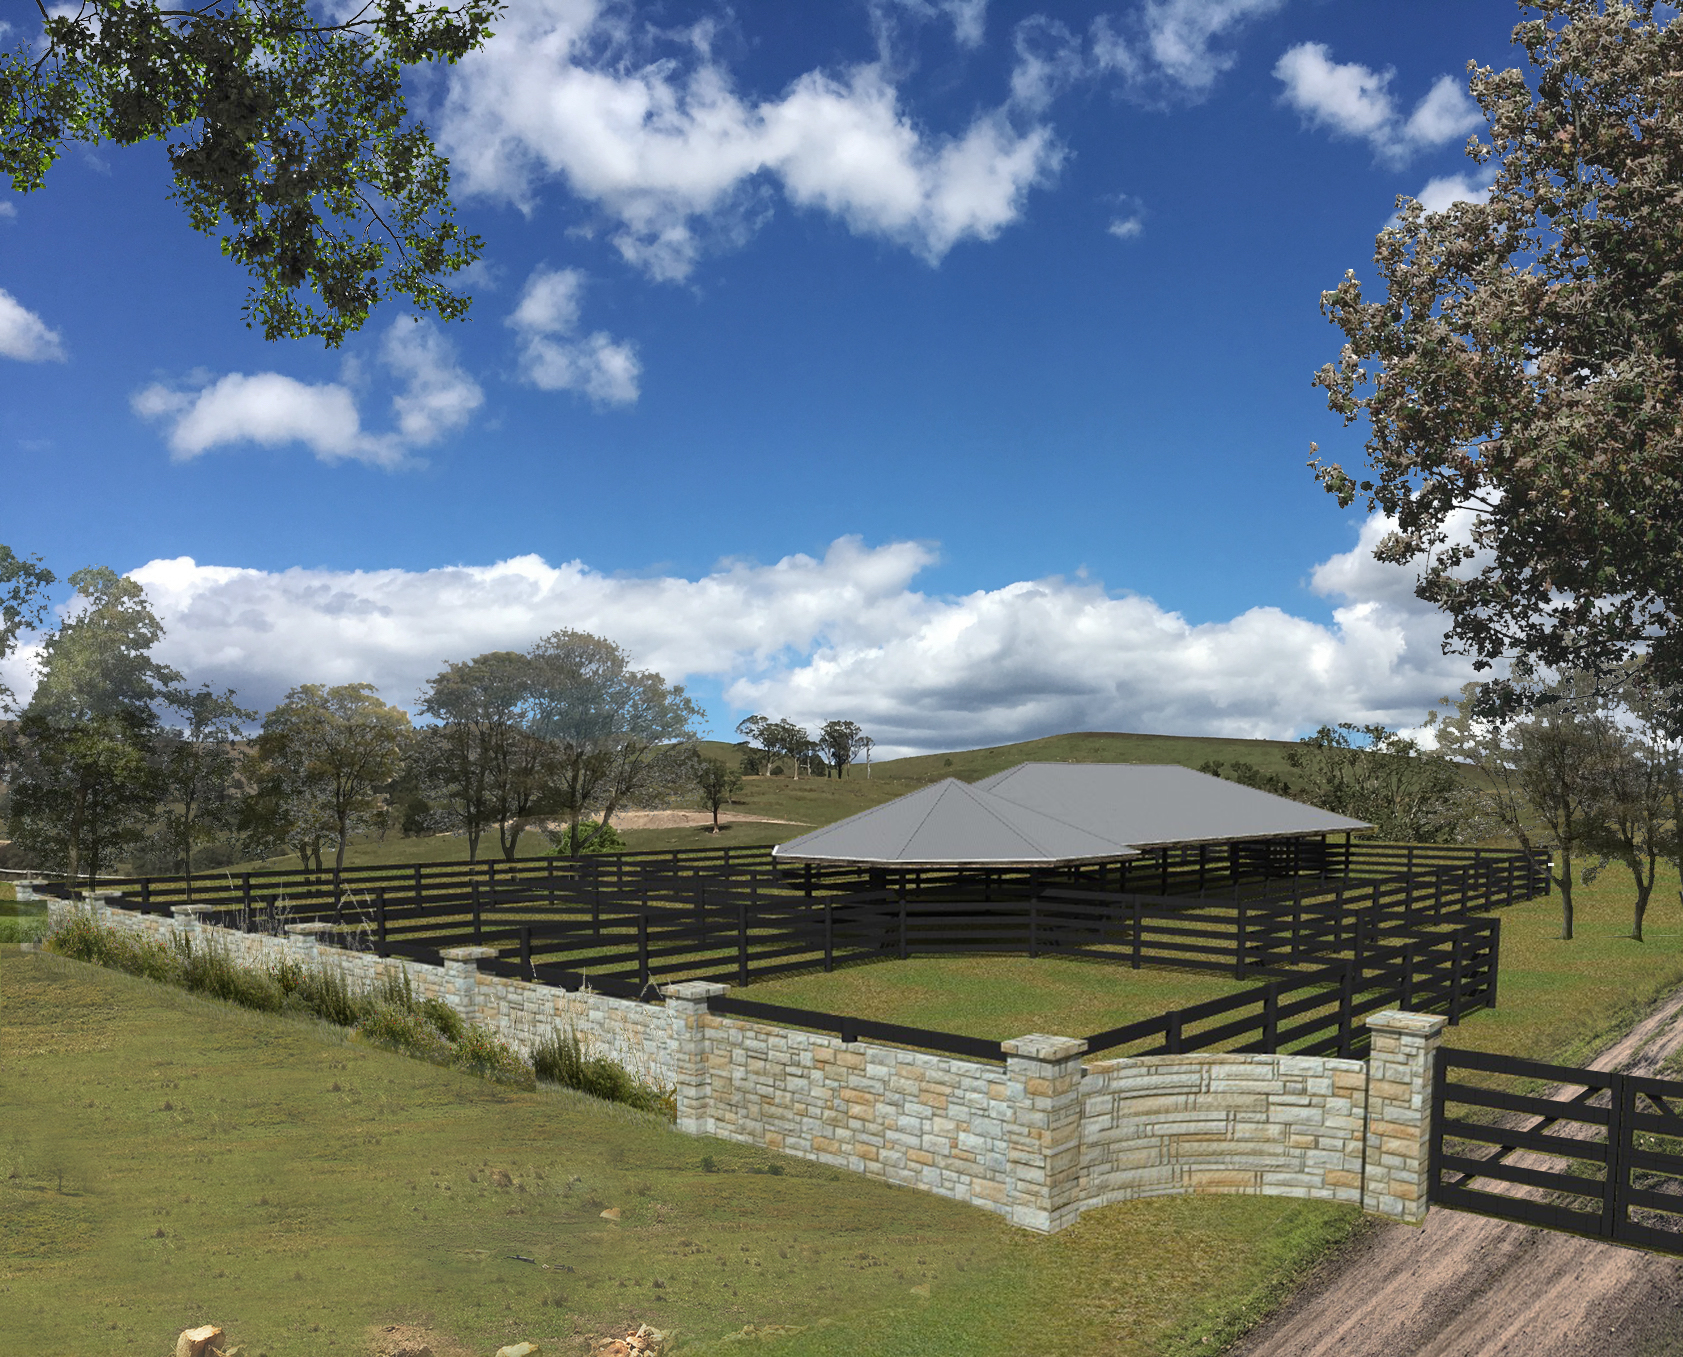 223 - Cattle Yards 3D5 170519.jpg